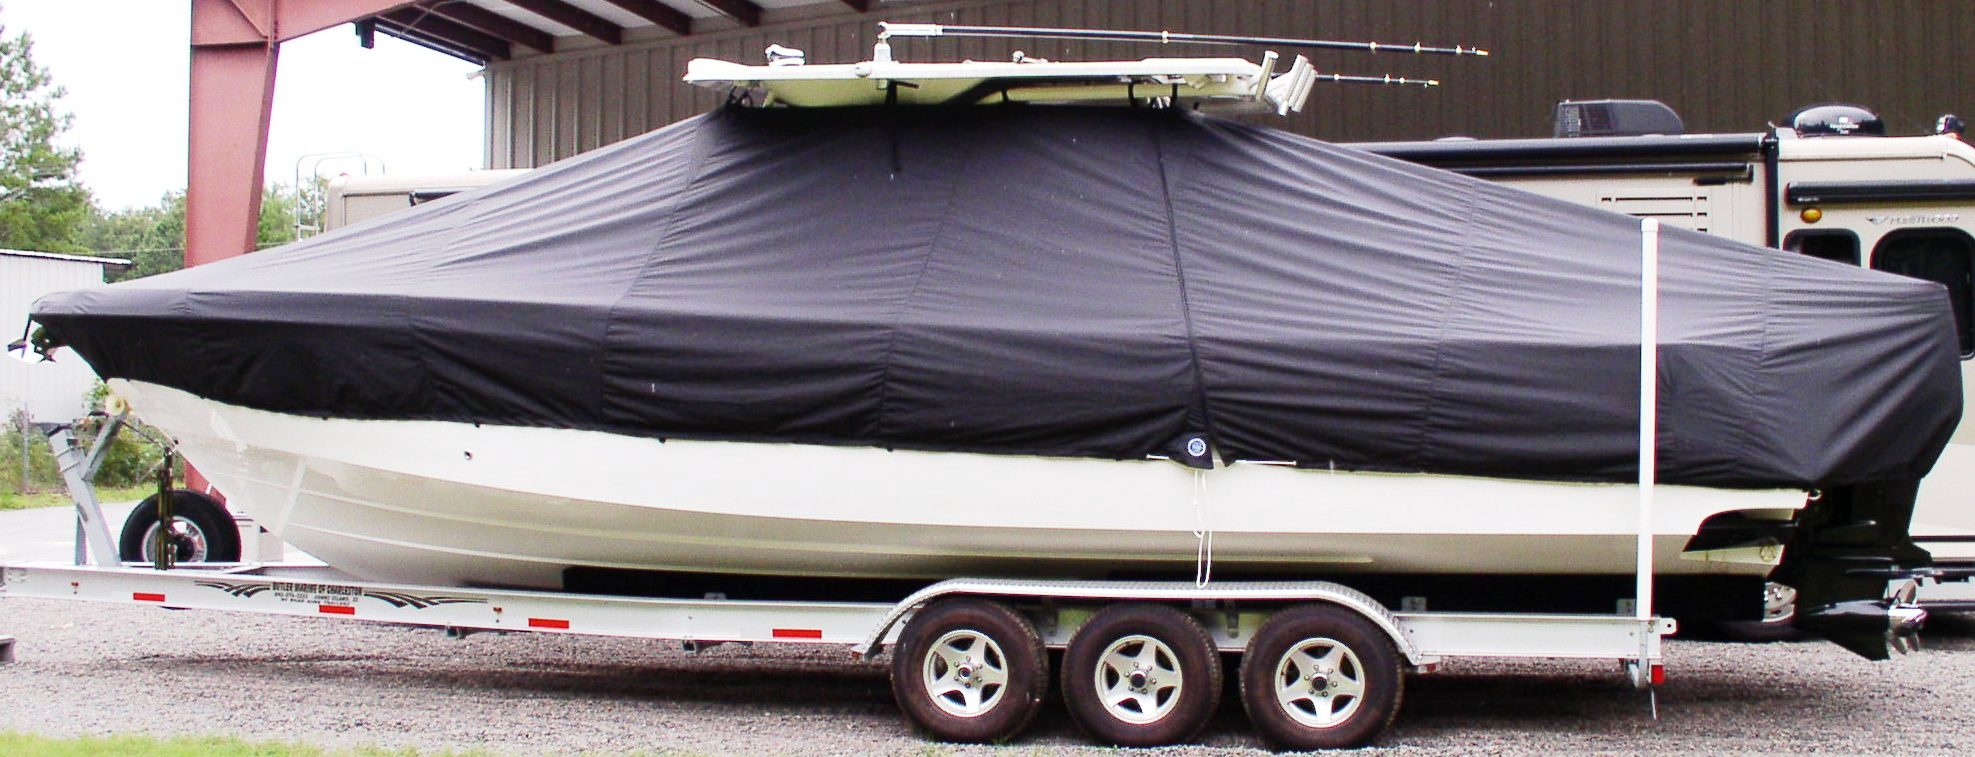 Everglades 350LX, 20xx, TTopCovers™ T-Top boat cover, port side